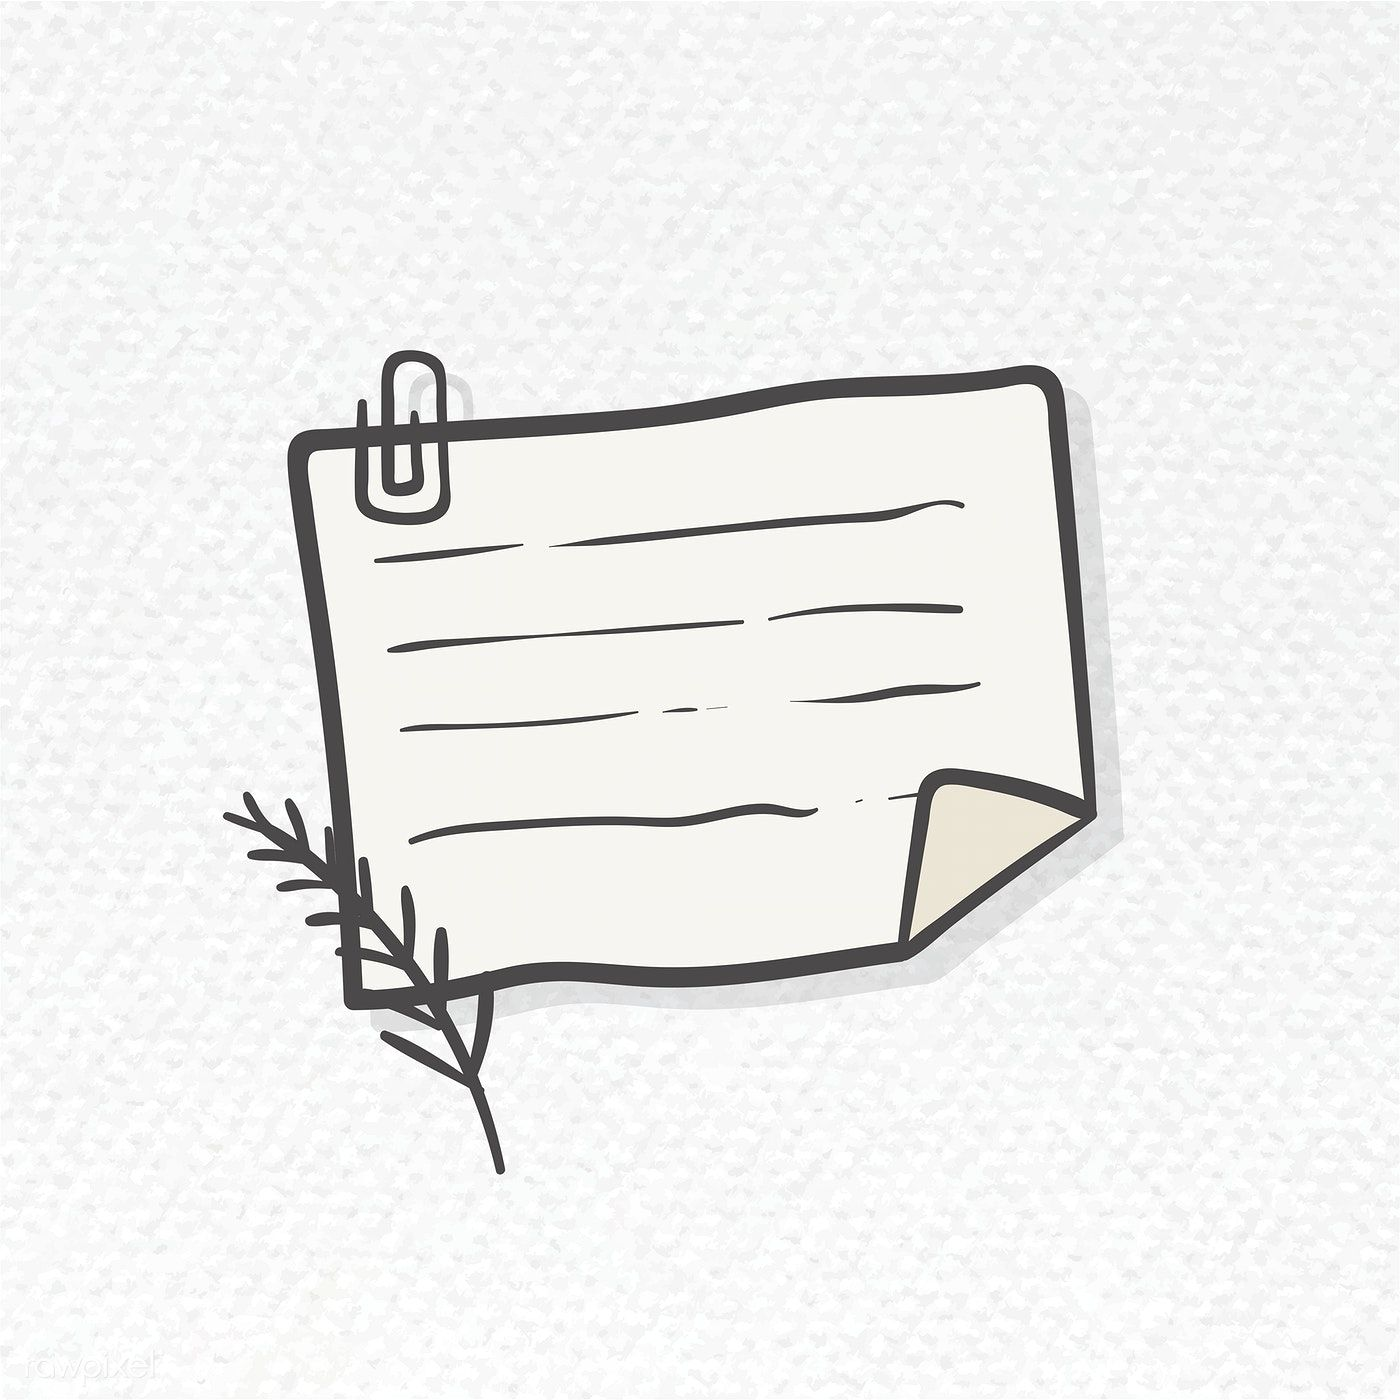 Blank lined paper note with paper clip illustration free